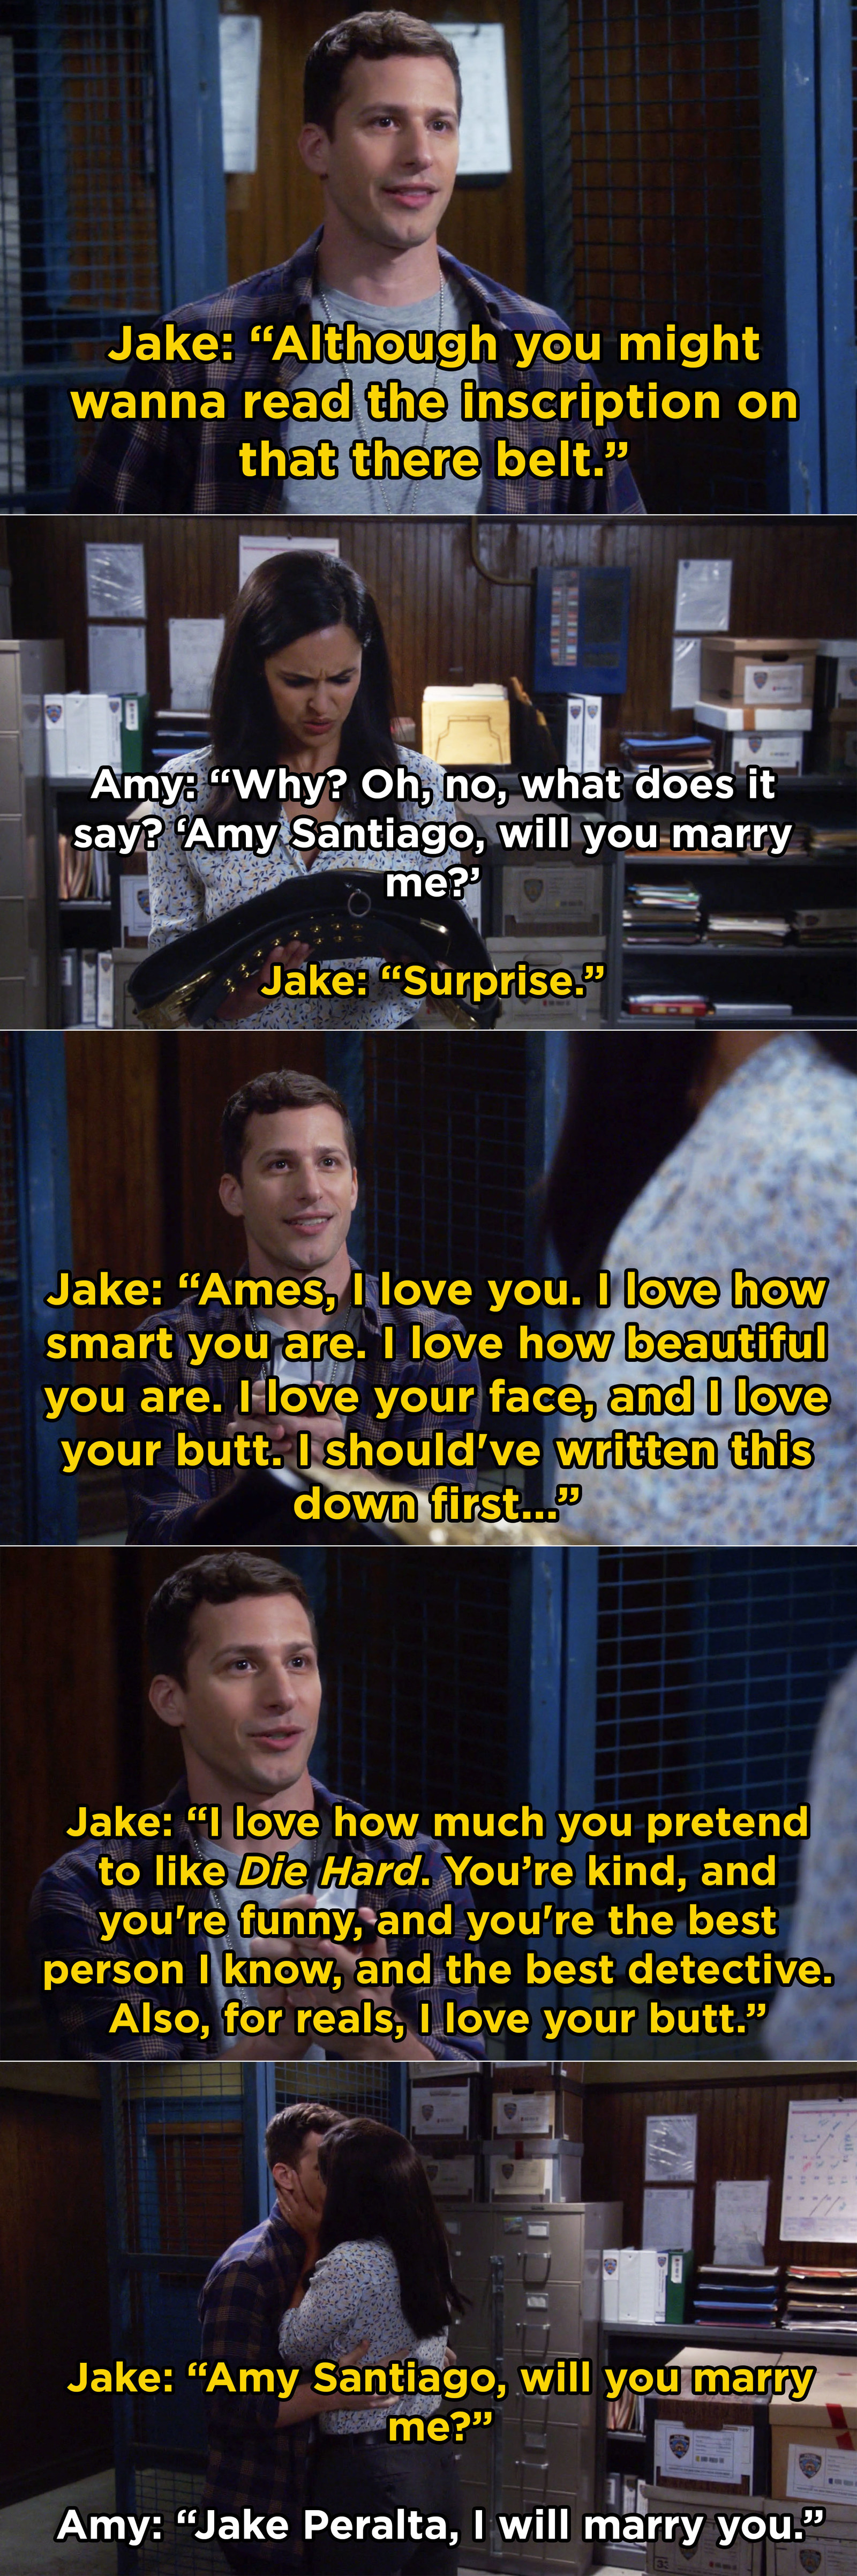 And when Jake made us all cry by rigging the end of a Halloween heist so he could propose to Amy